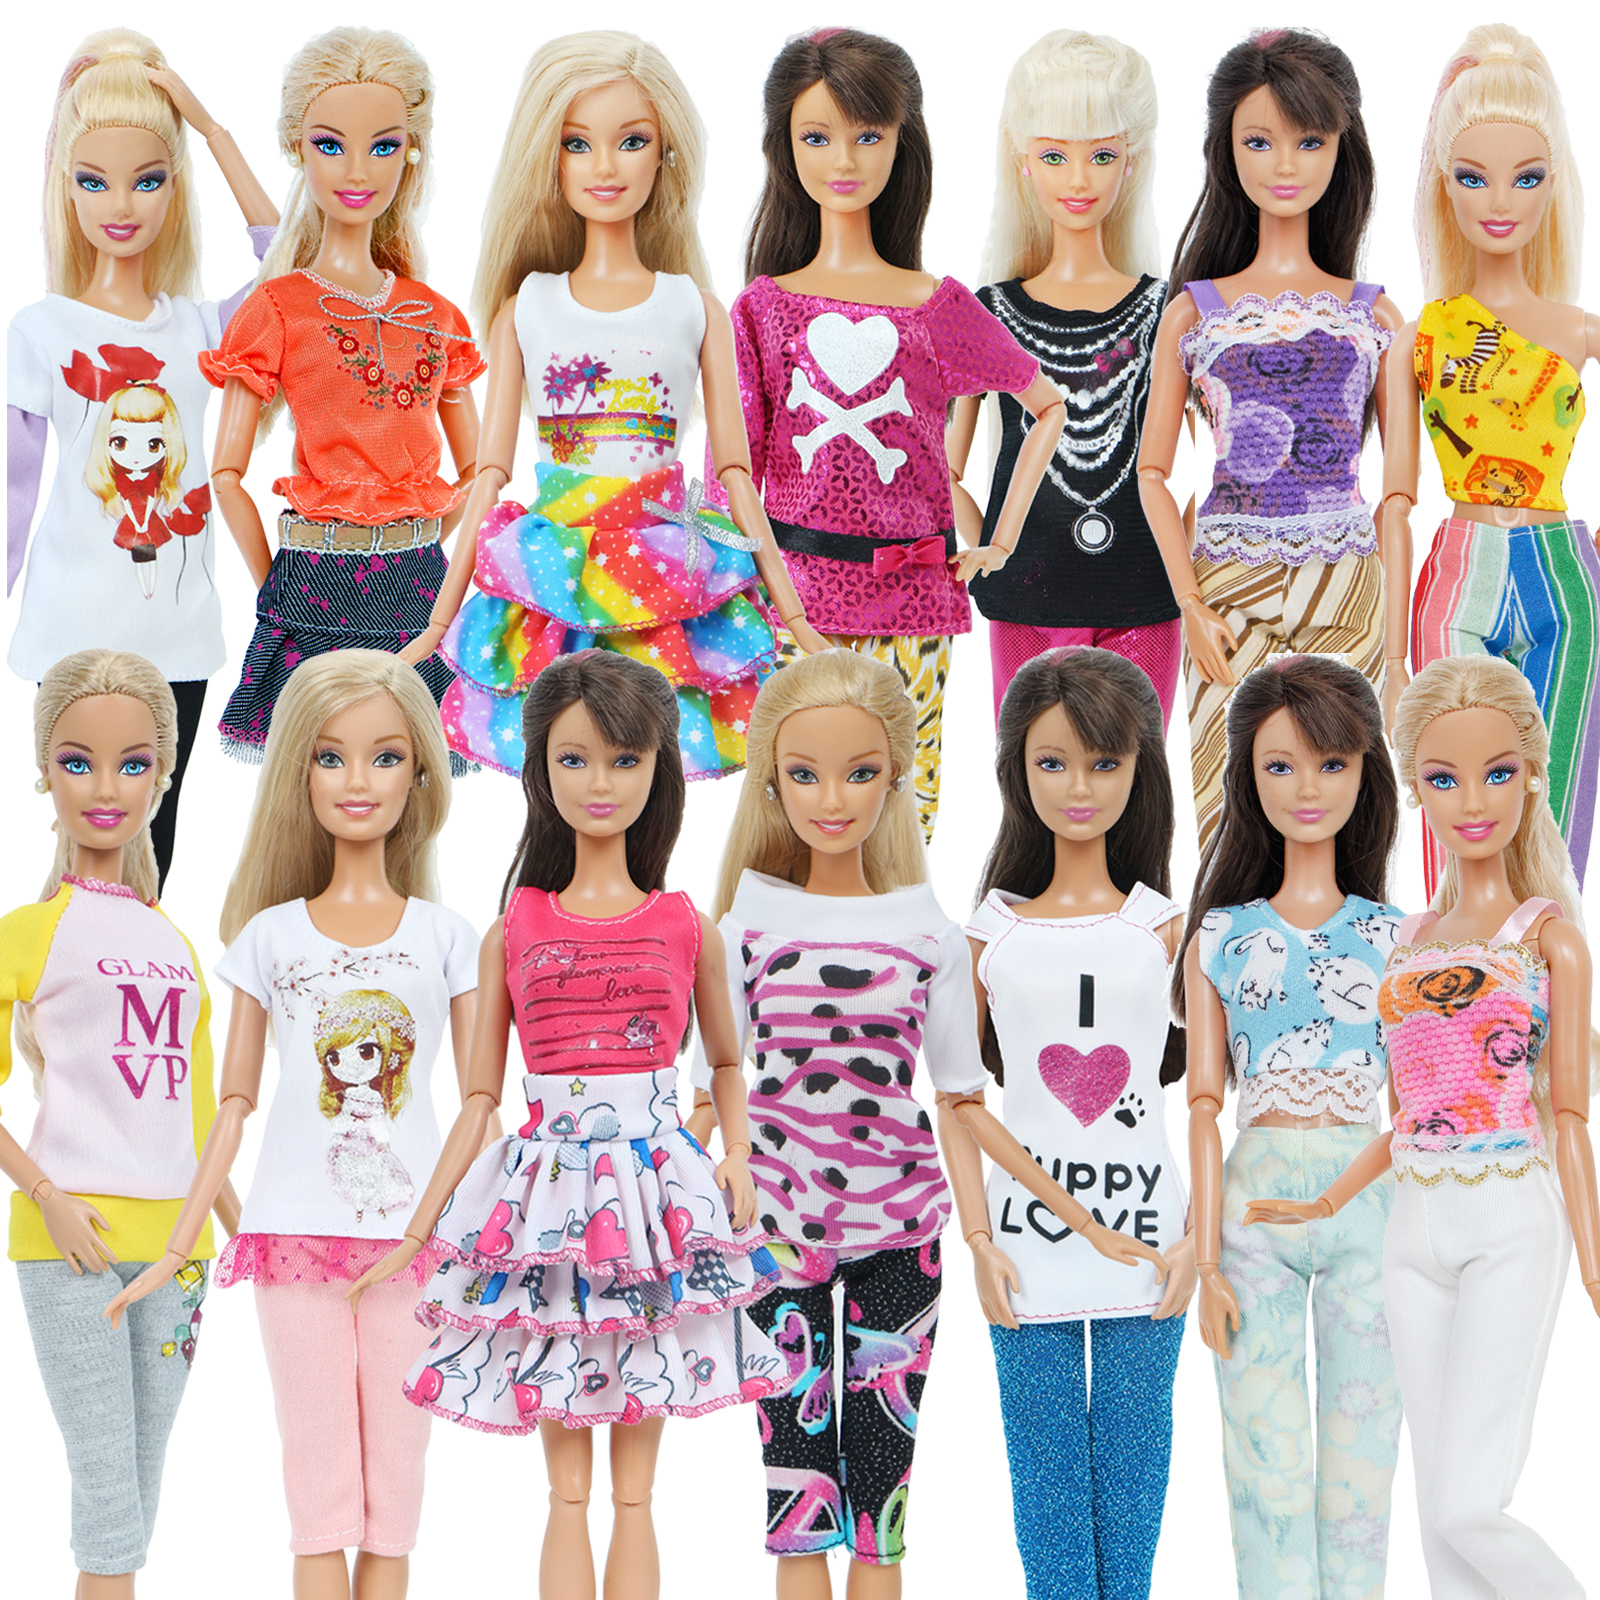 5 Sets Casual Wear Fashion Outfit Clothes Pants Tops Skirt for Barbie Dolls